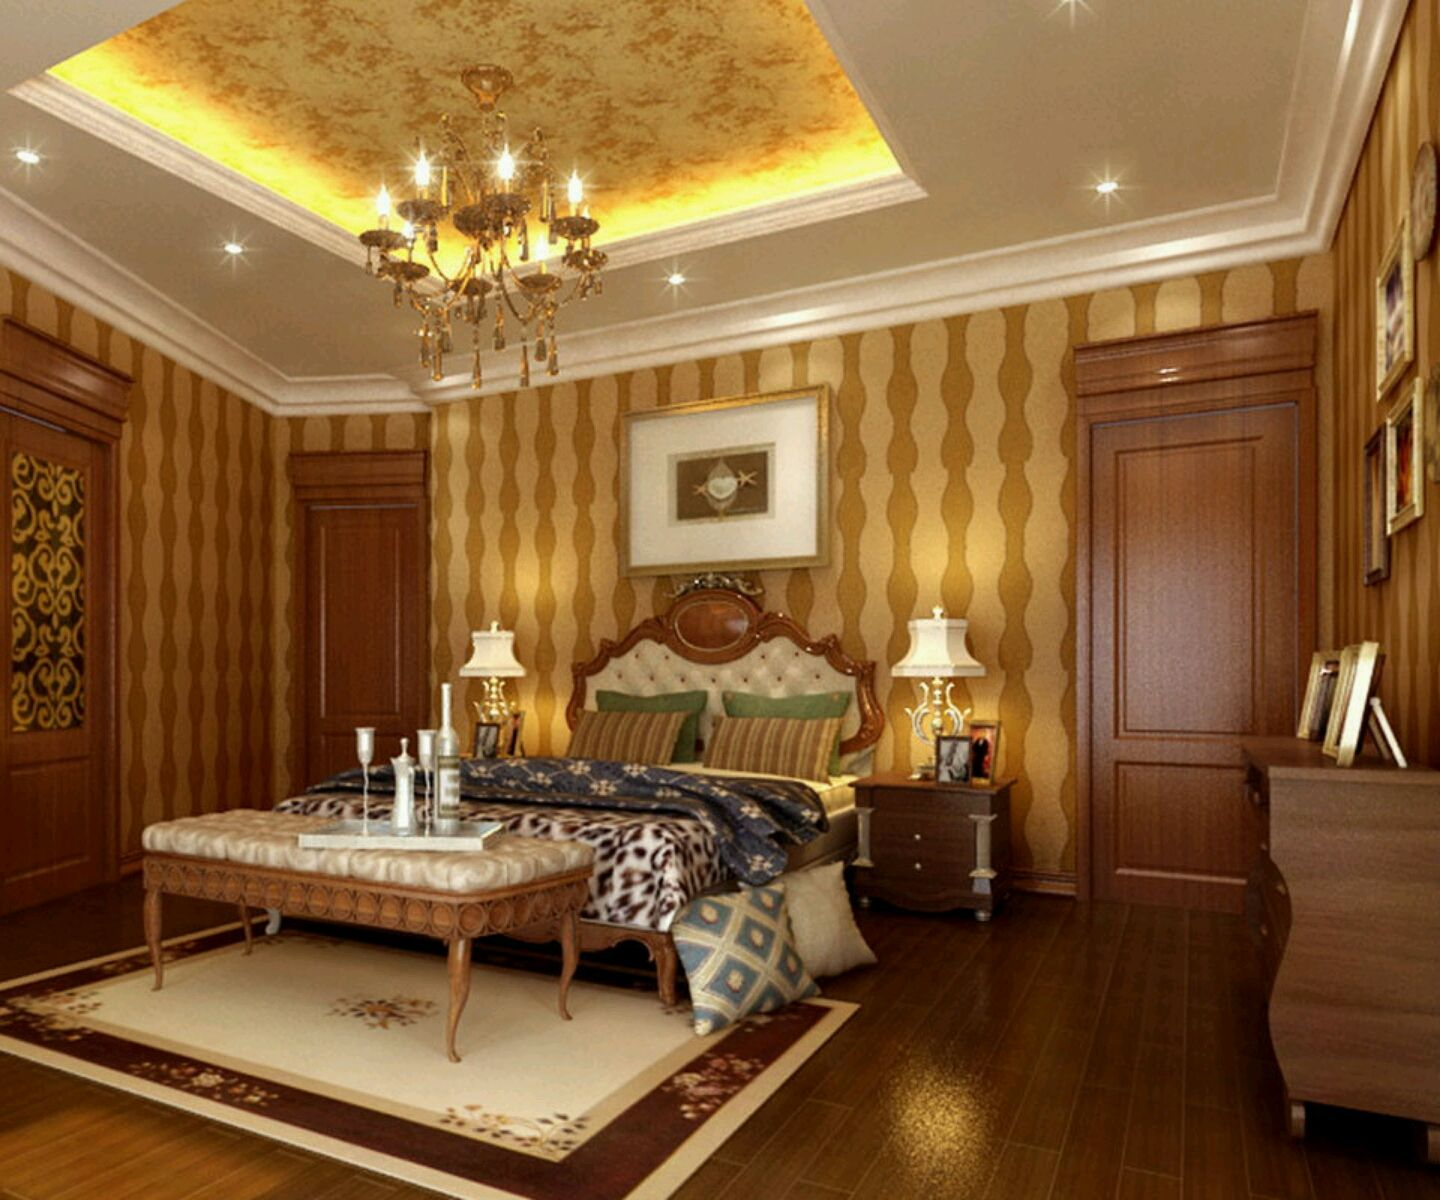 ceiling ideas Modern bedrooms designs ceiling designs ideas